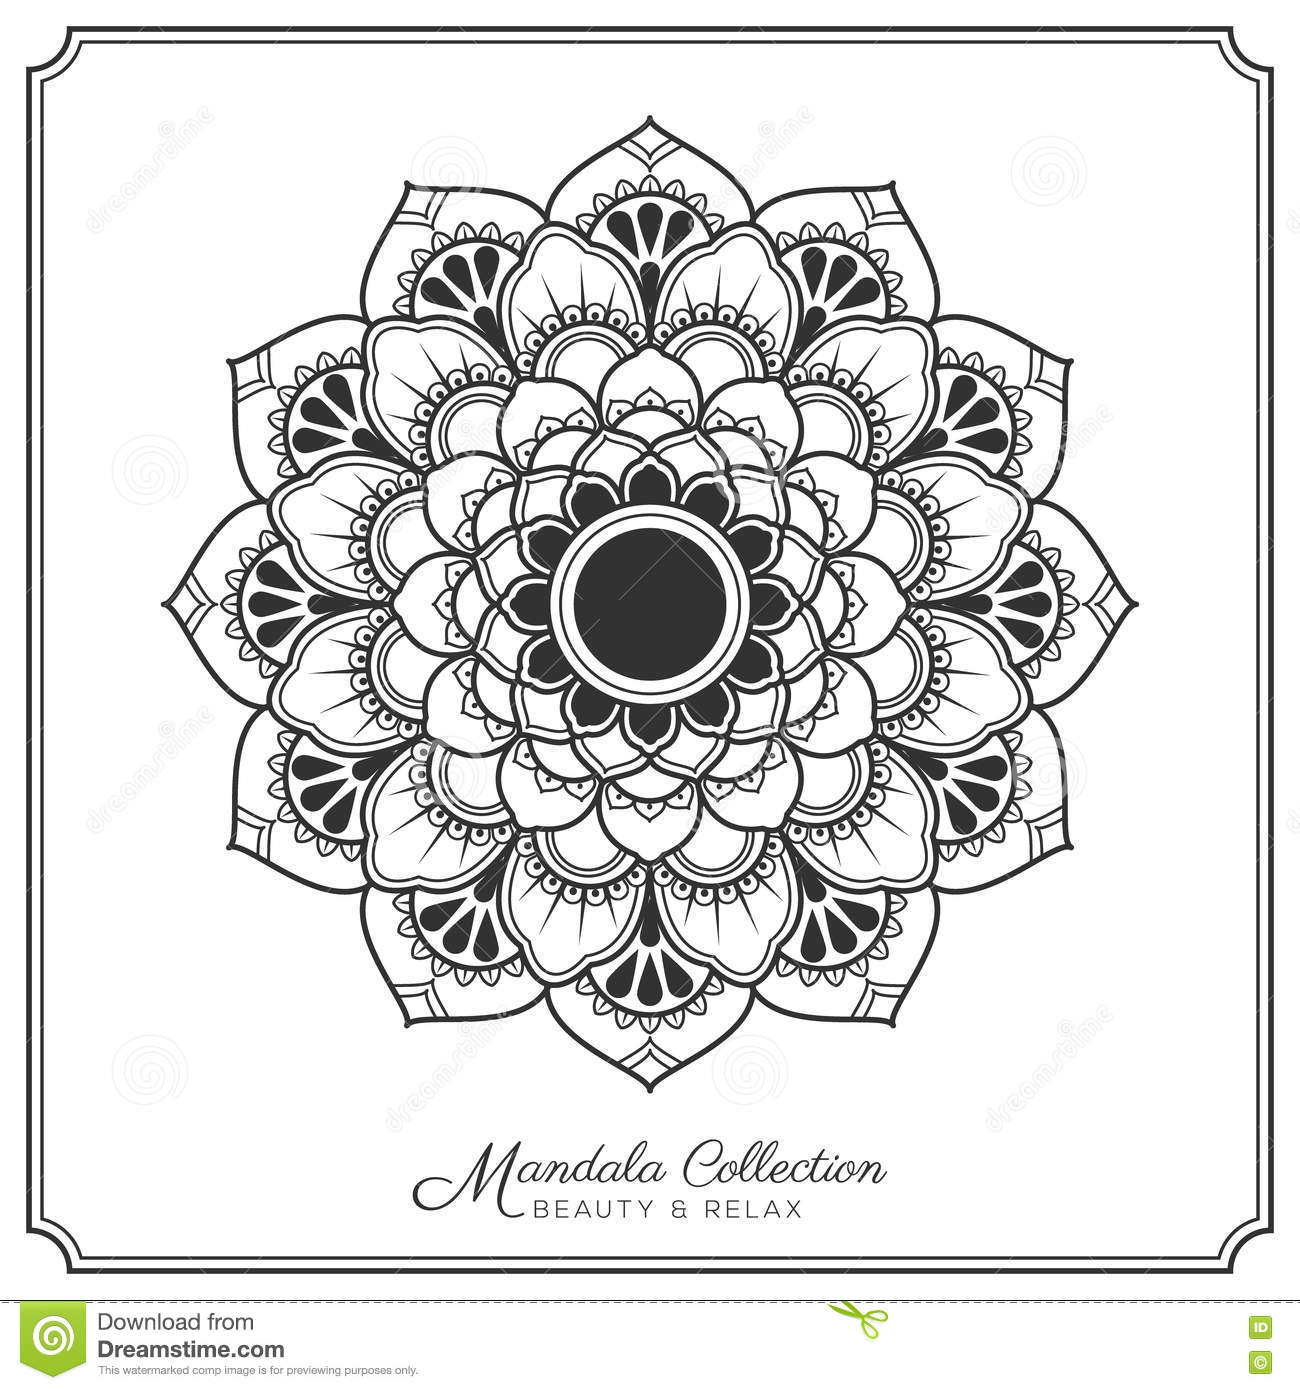 140 Mandala Tattoo Designs Ideas: 45+ Best Mandala Tattoos Designs